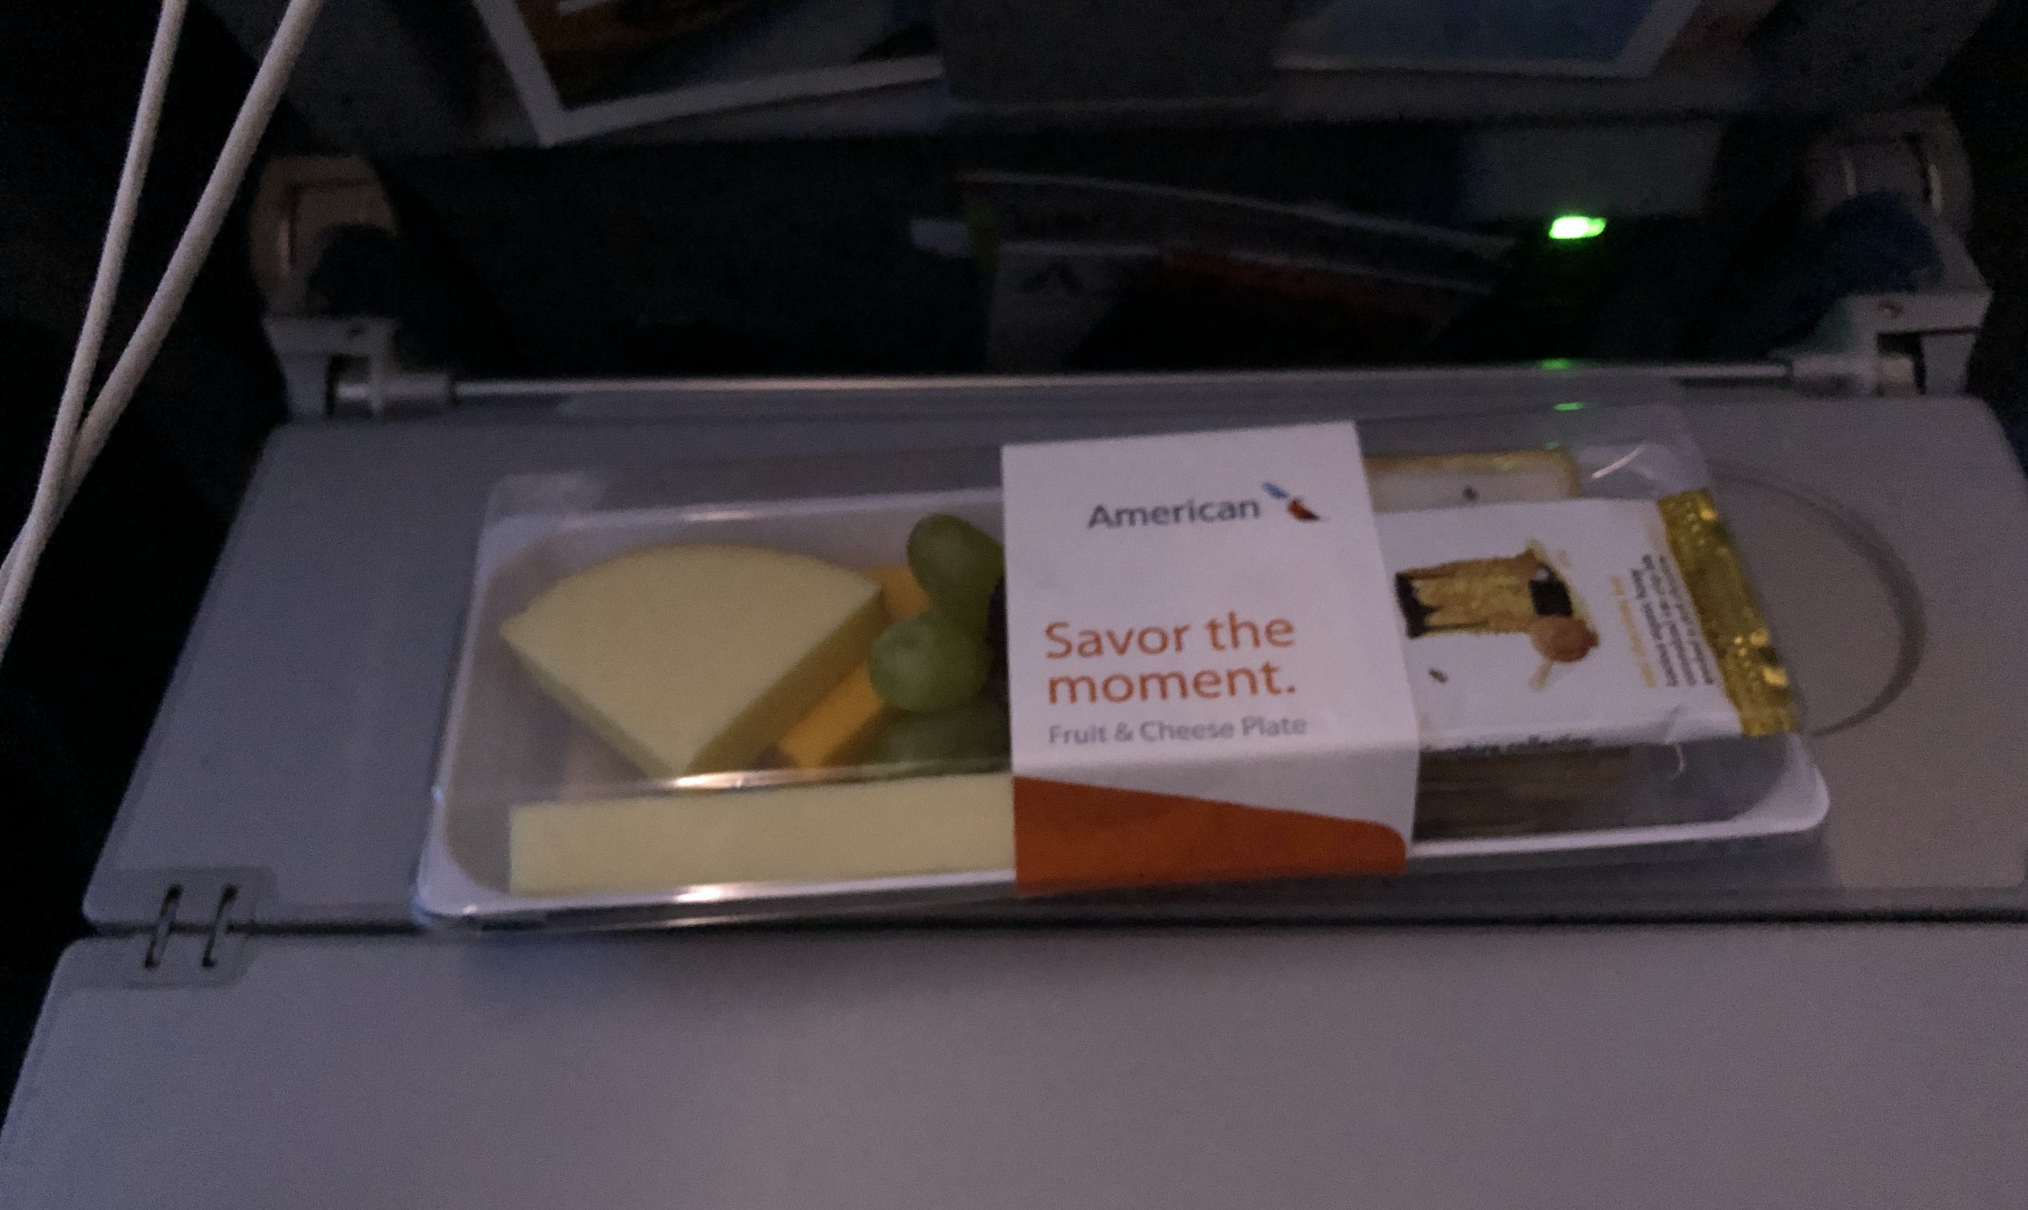 The cheese plate from American Airlines